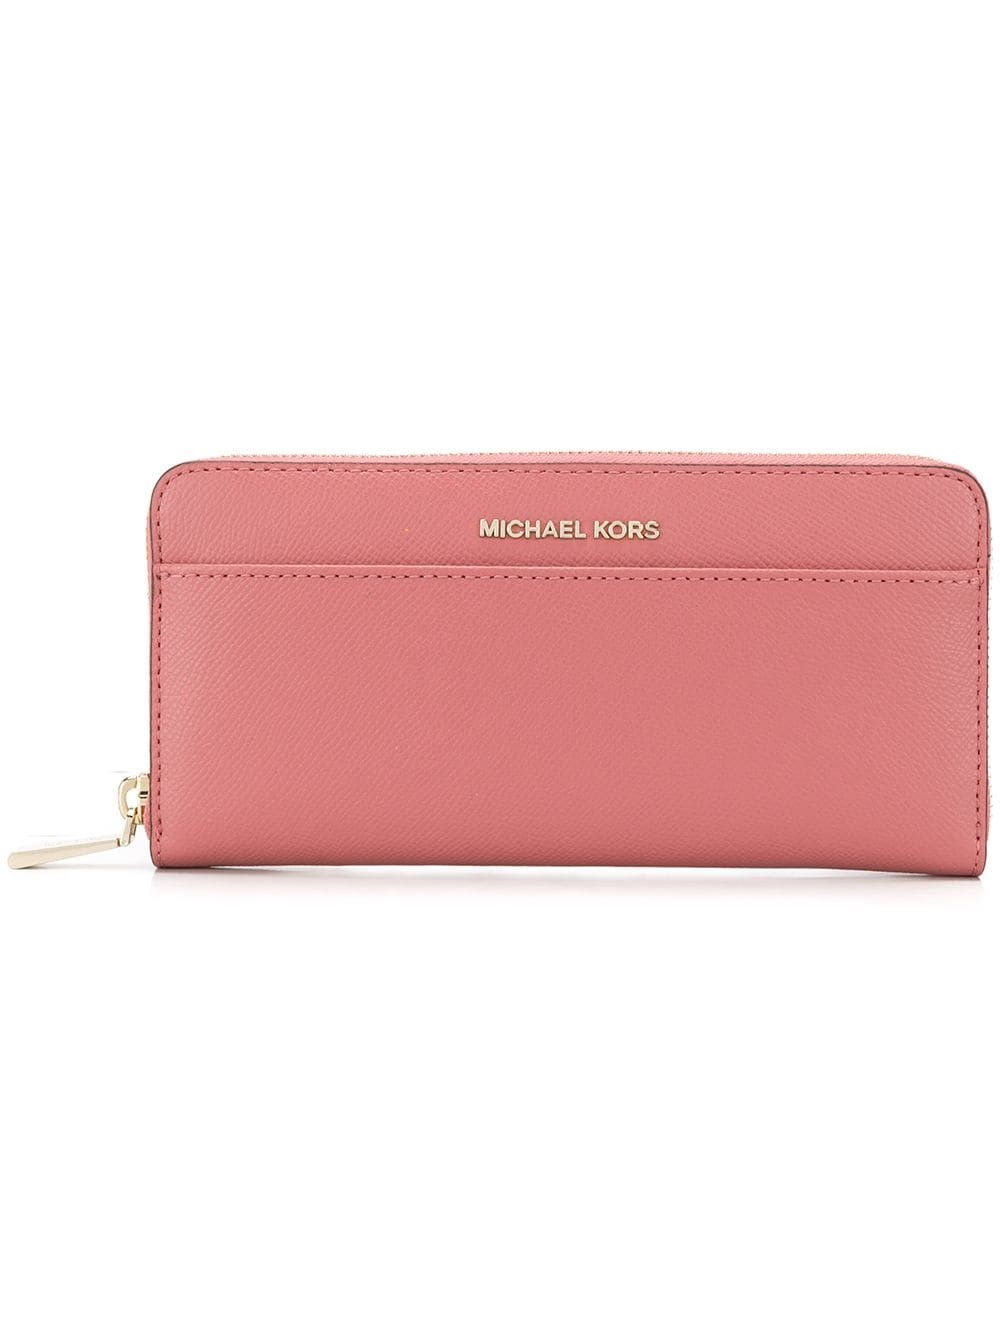 c4df114c3eed michael kors mk CONTINENTAL WALLET available on montiboutique.com ...